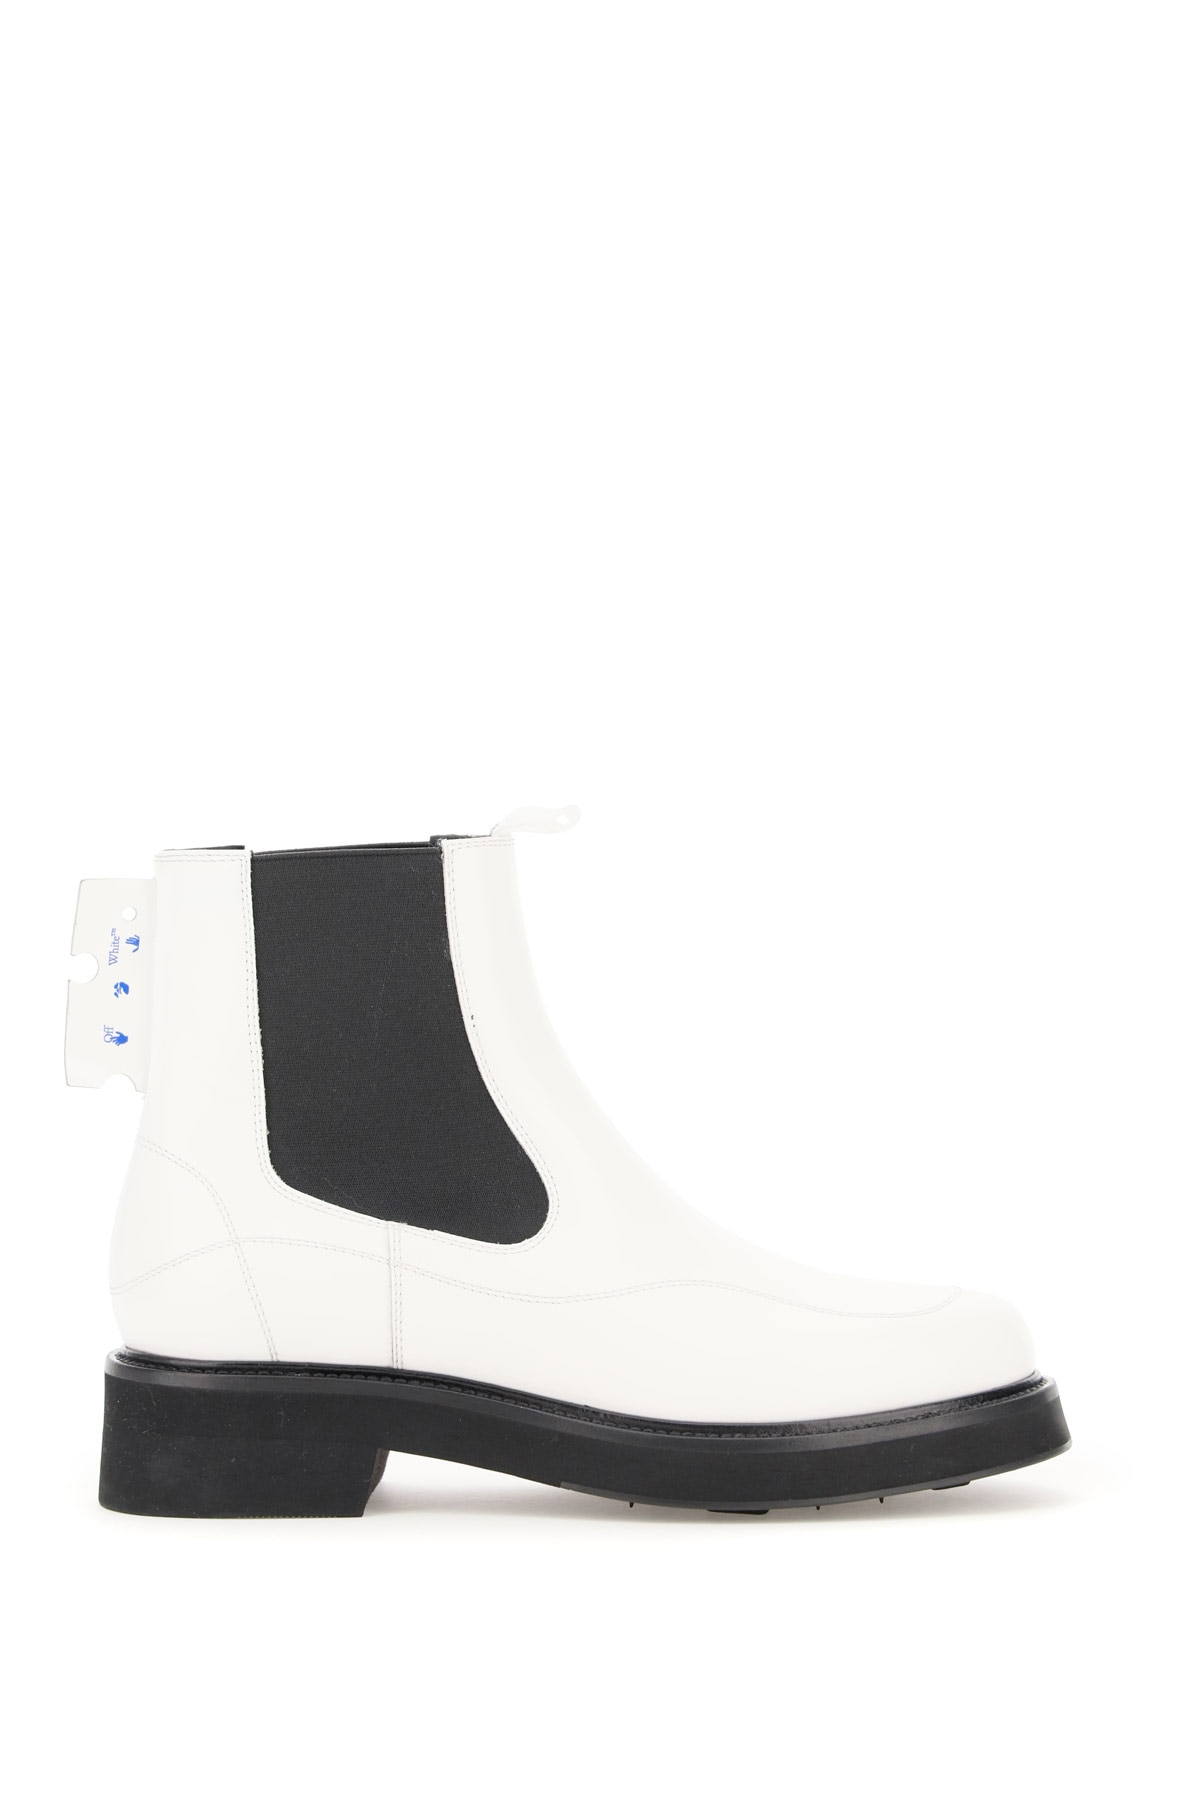 Off-White Chelsea Boots 36 White, Black Leather